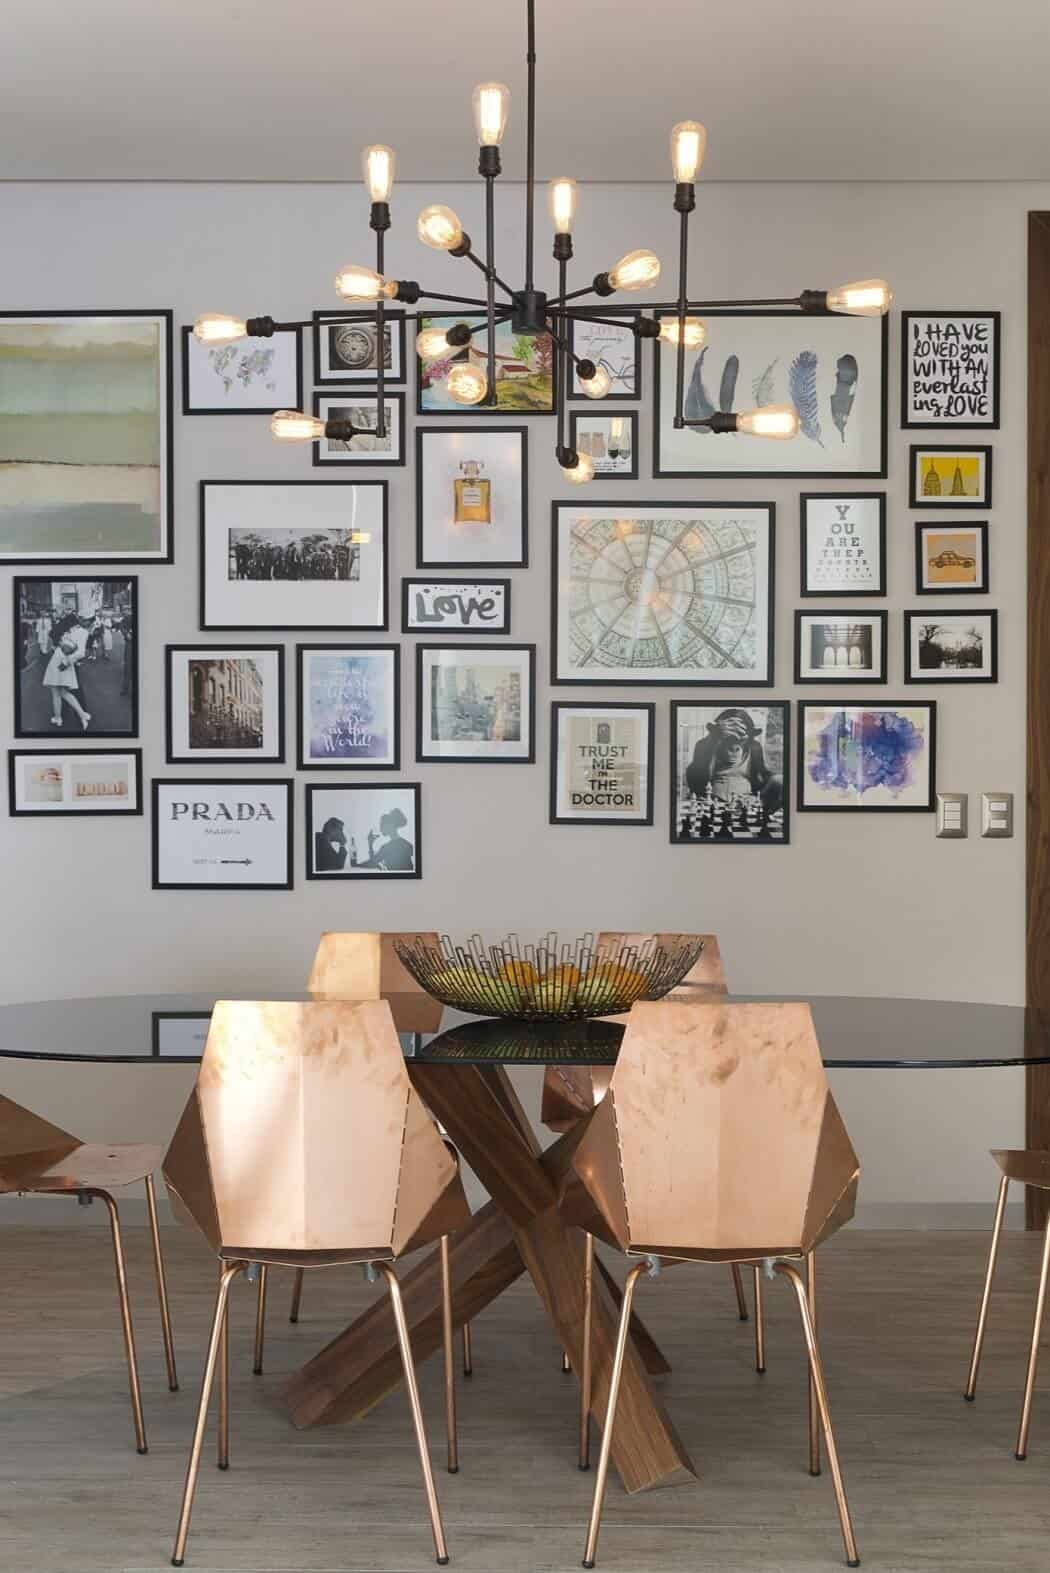 Copper Chairs And A Wall Of Black Framed Art Make This Dining Room By Kababie Architects Spectacular But Even Without These Two Elements The Criss Crossed